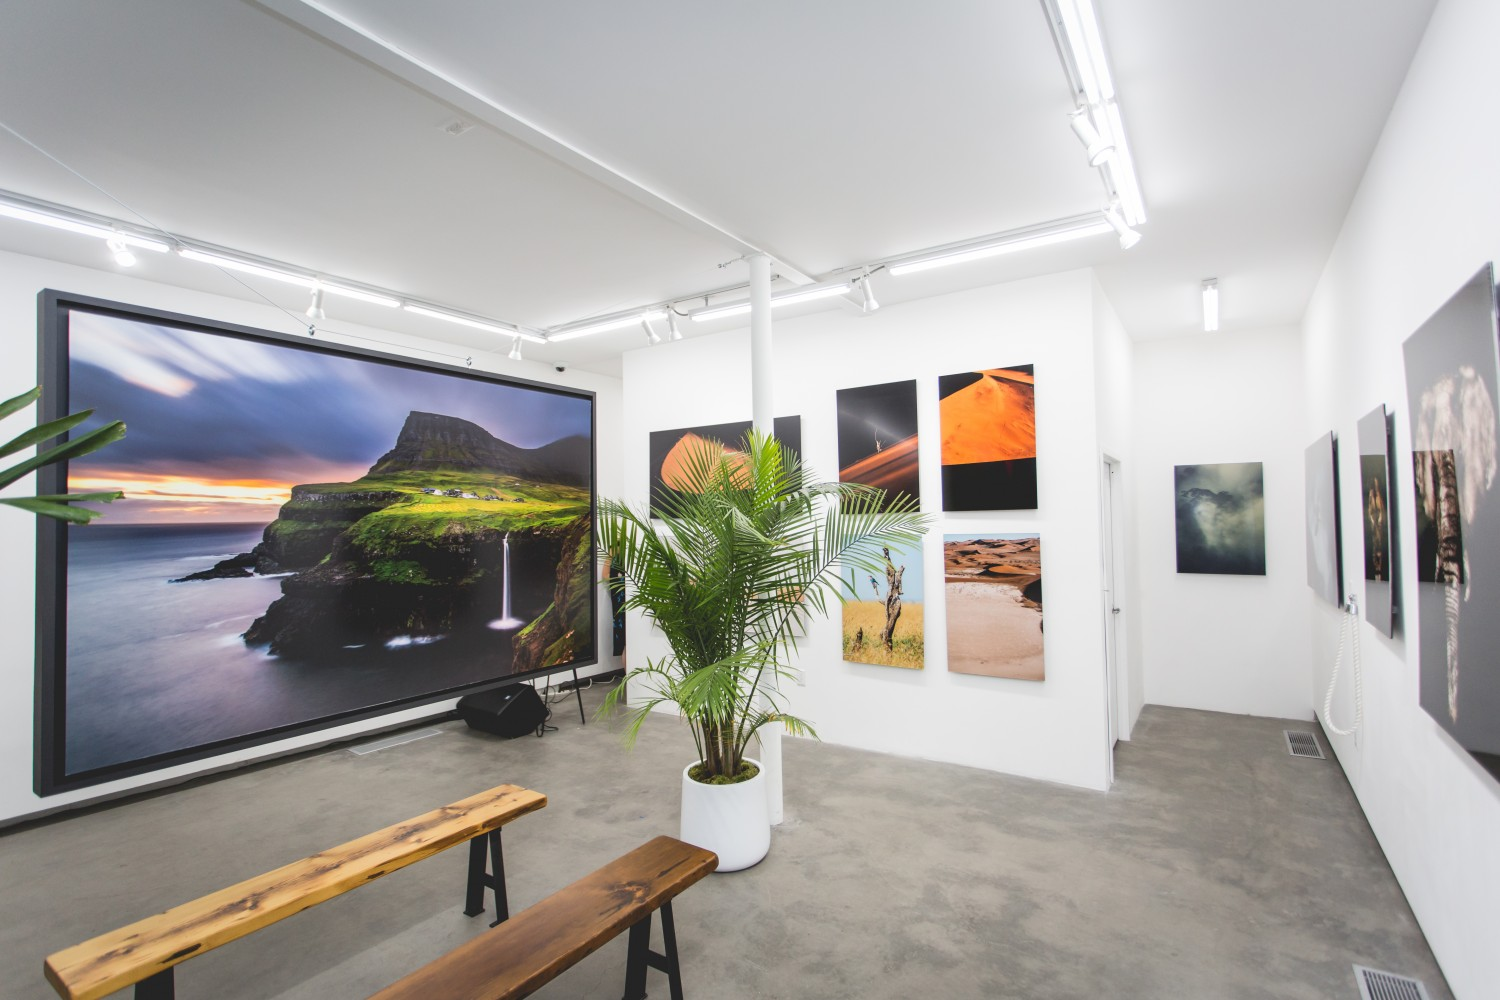 How much does a pop up shop cost? No Limits by Kourosh Keynejad Opening at Parasol Projects